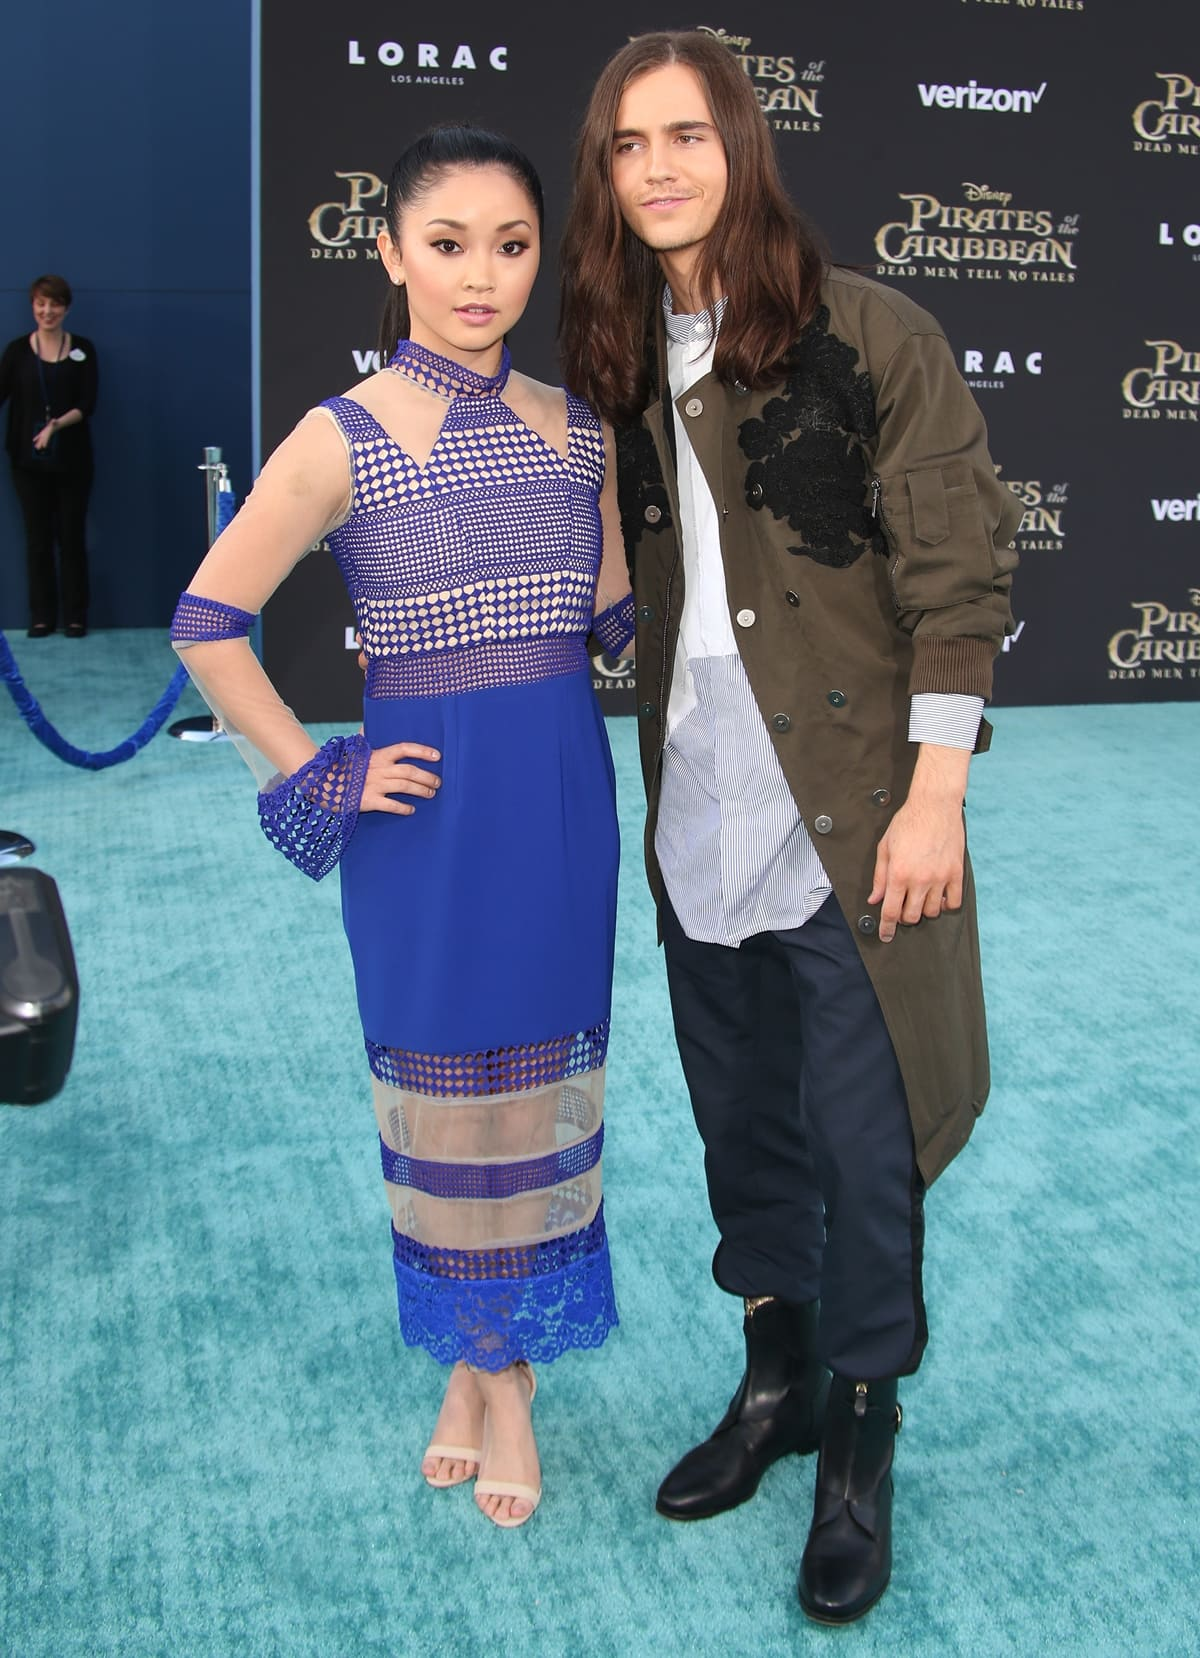 Lana Condor is three years younger and significantly shorter than her boyfriend Anthony De La Torre